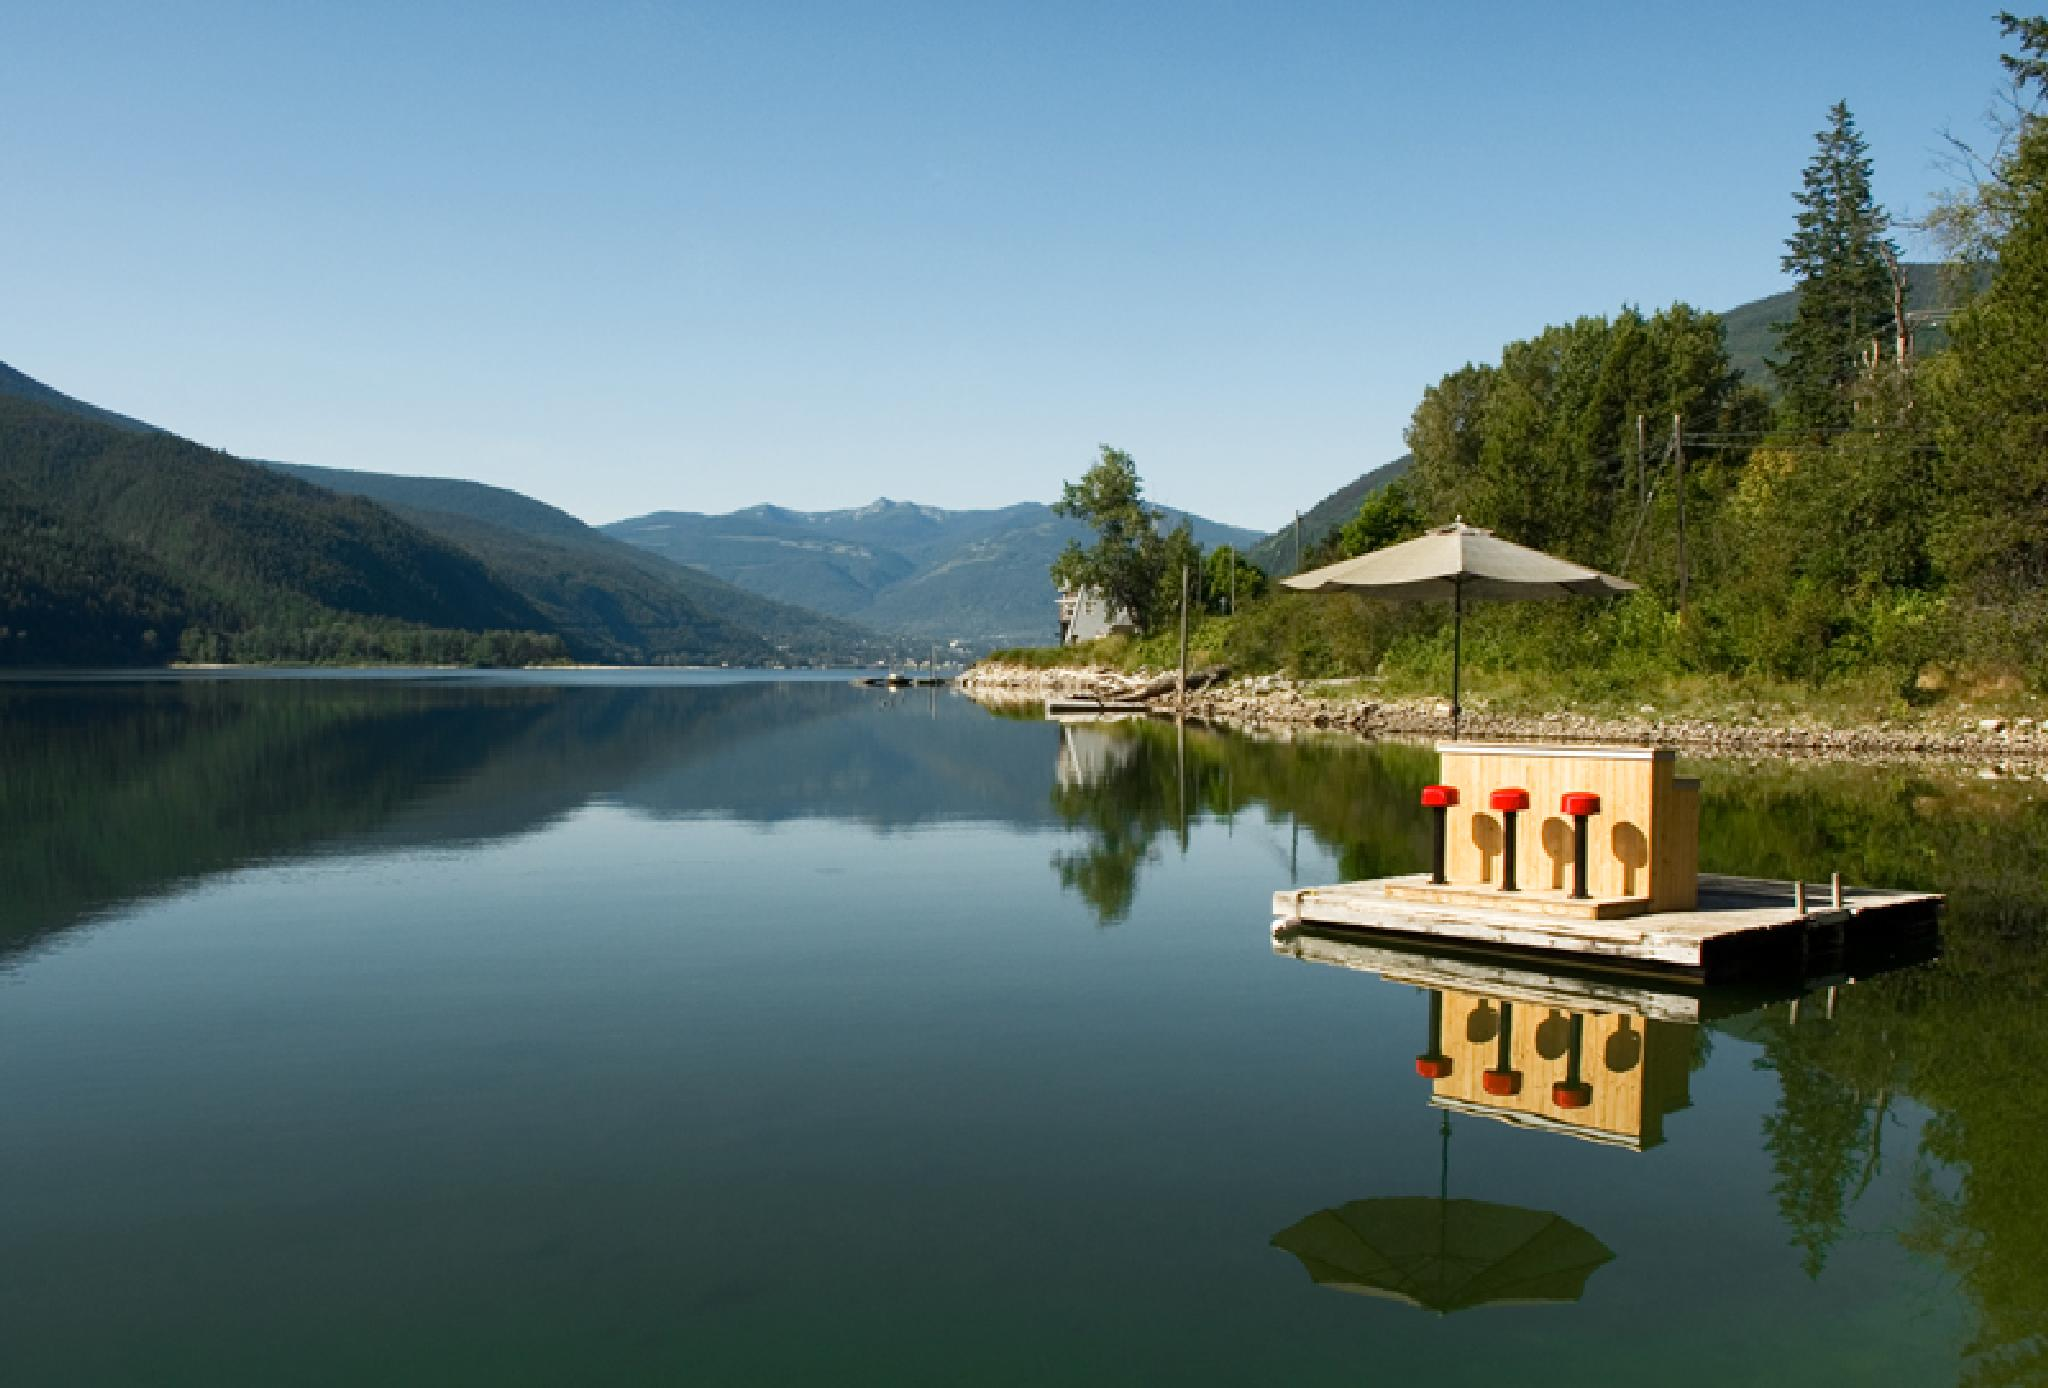 Bar on the lake by MadeleineGuenette